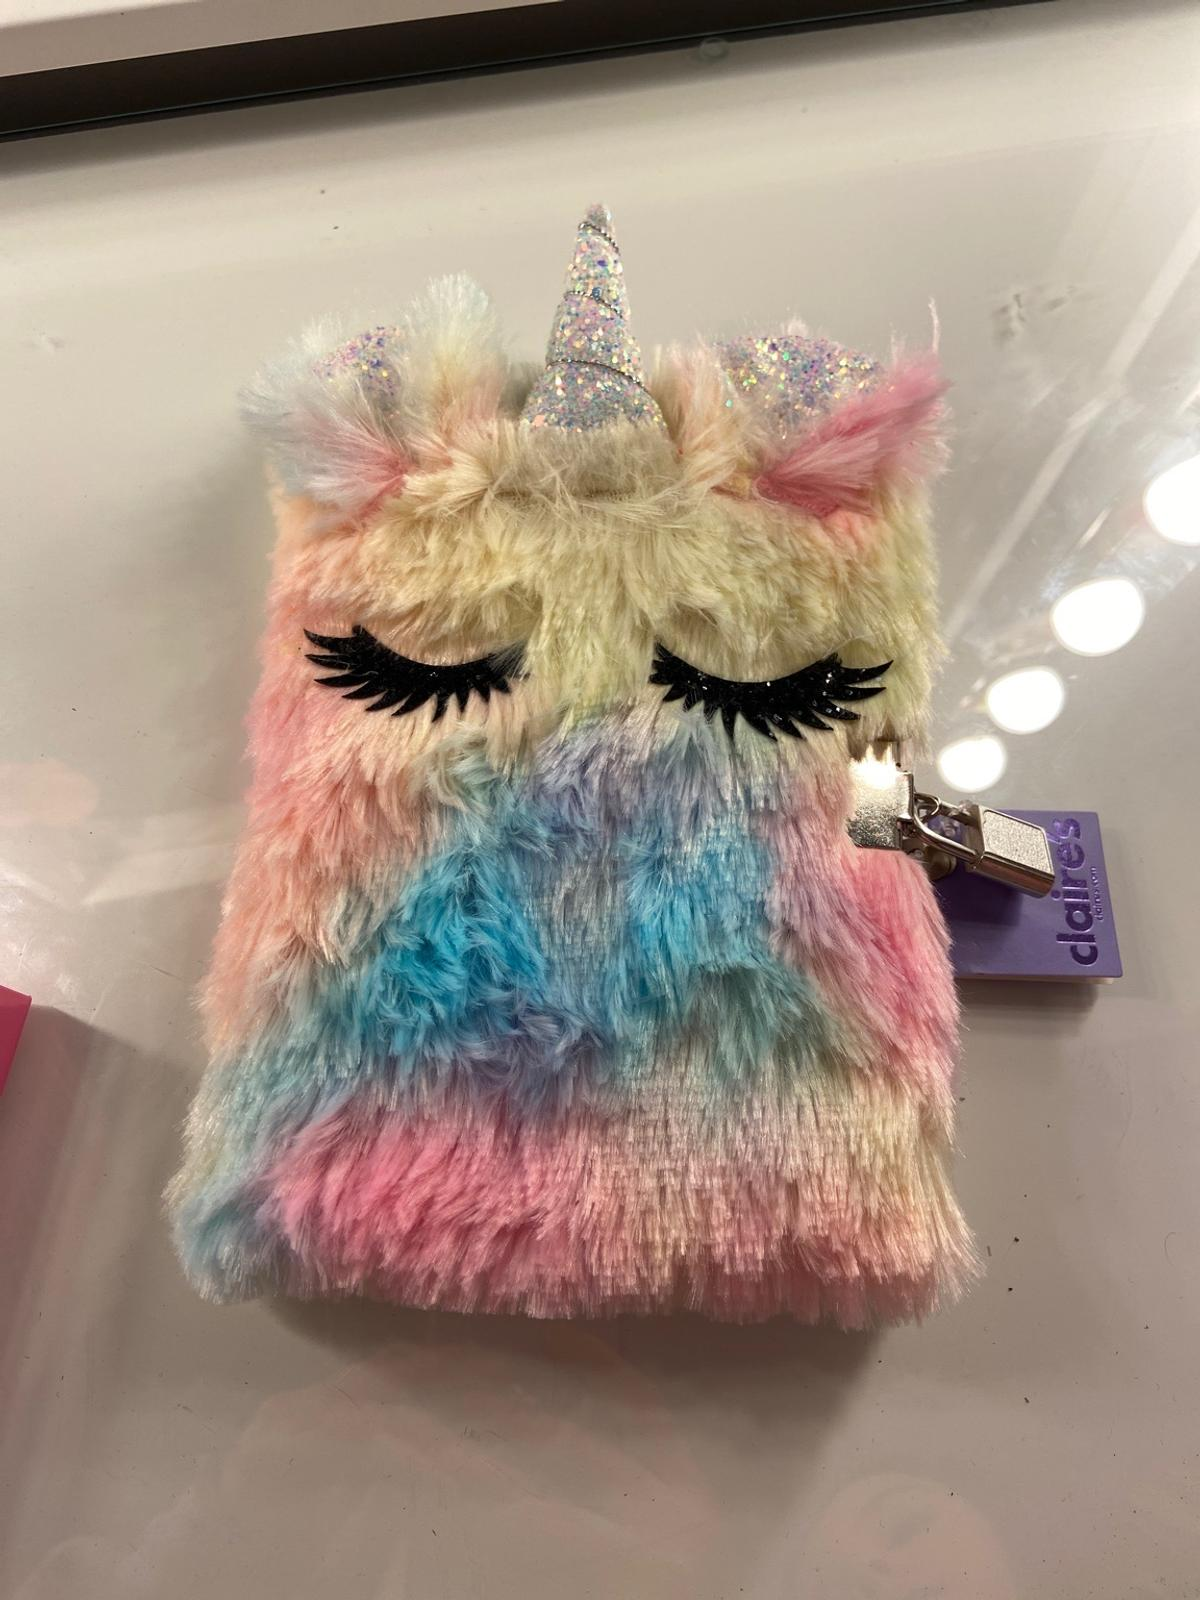 A fluffy unicorn diary with a lock